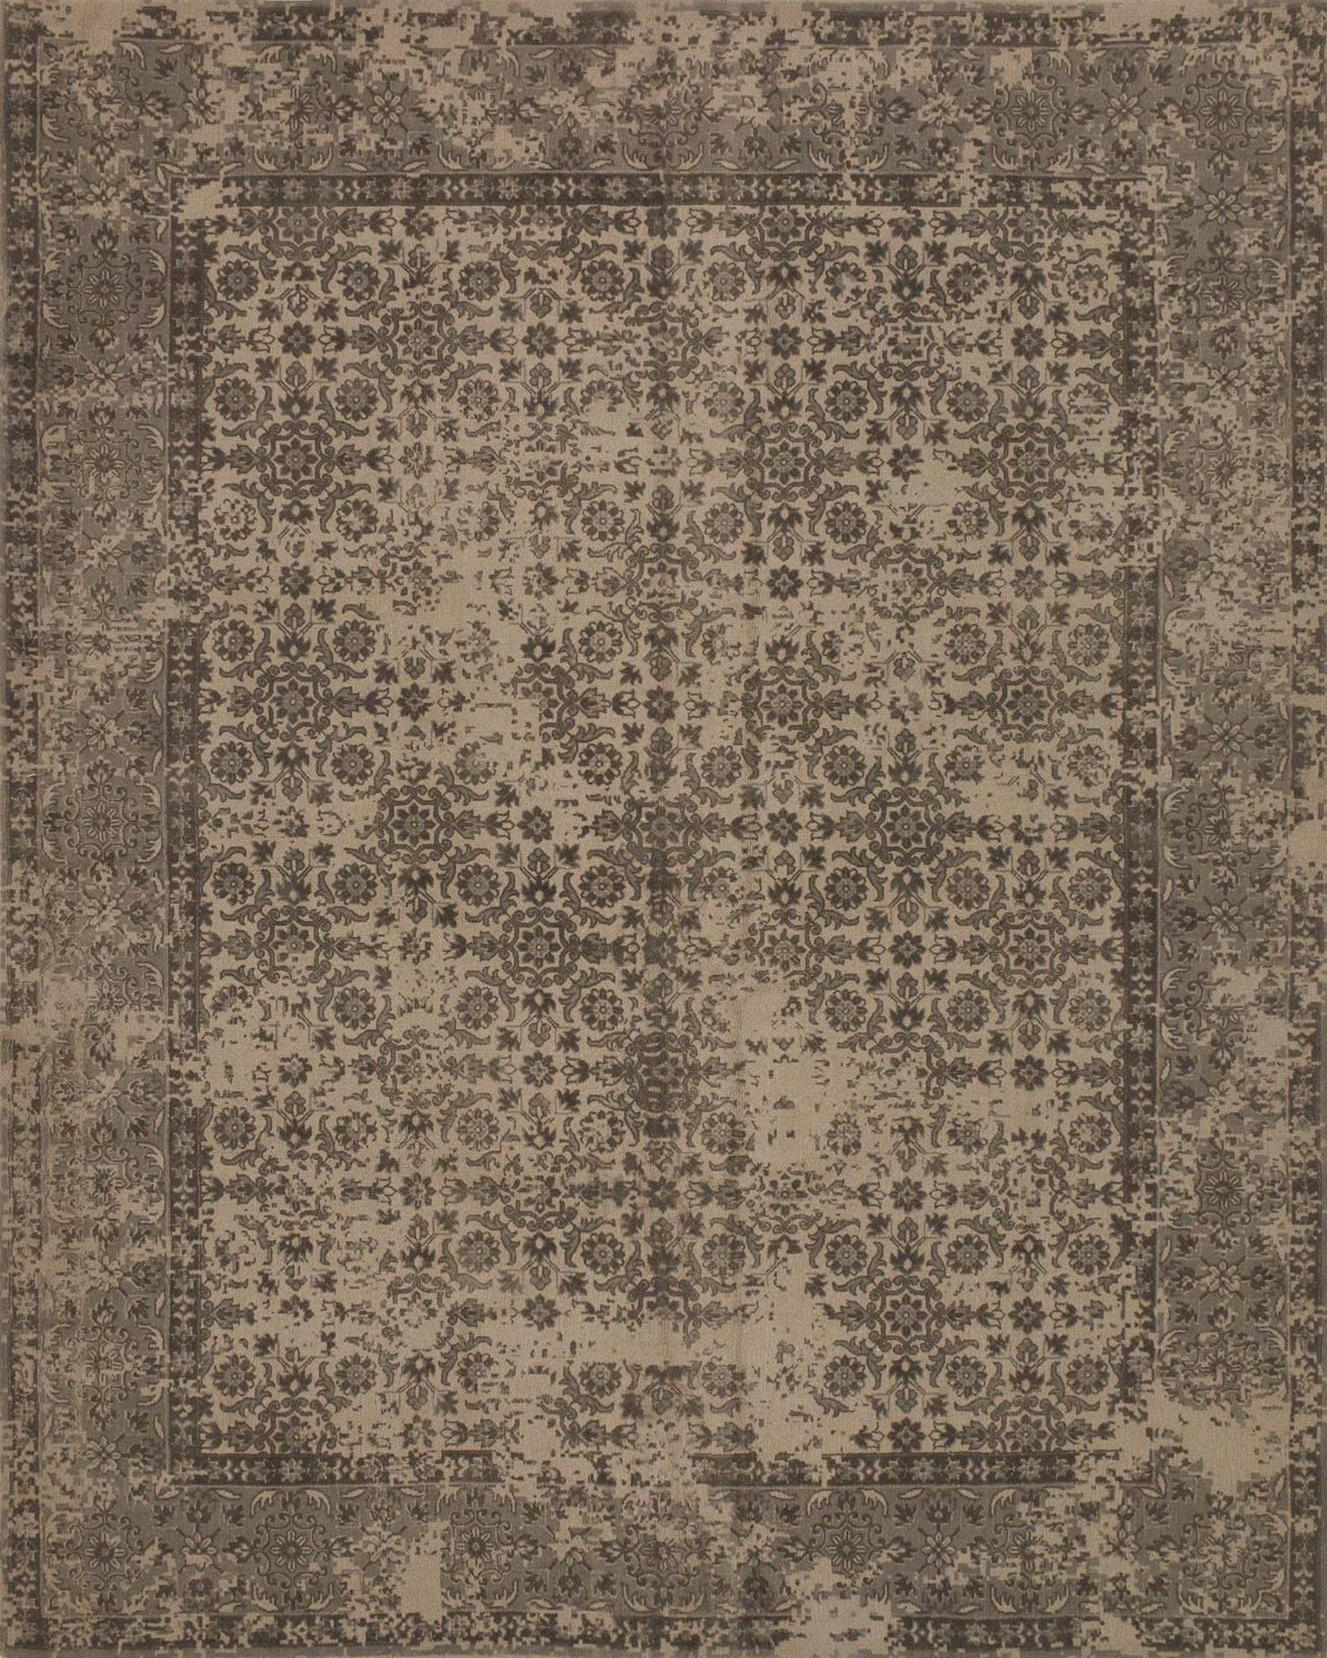 Lily Park Lp 02 Beige Area Rug Magnolia Home By Joanna